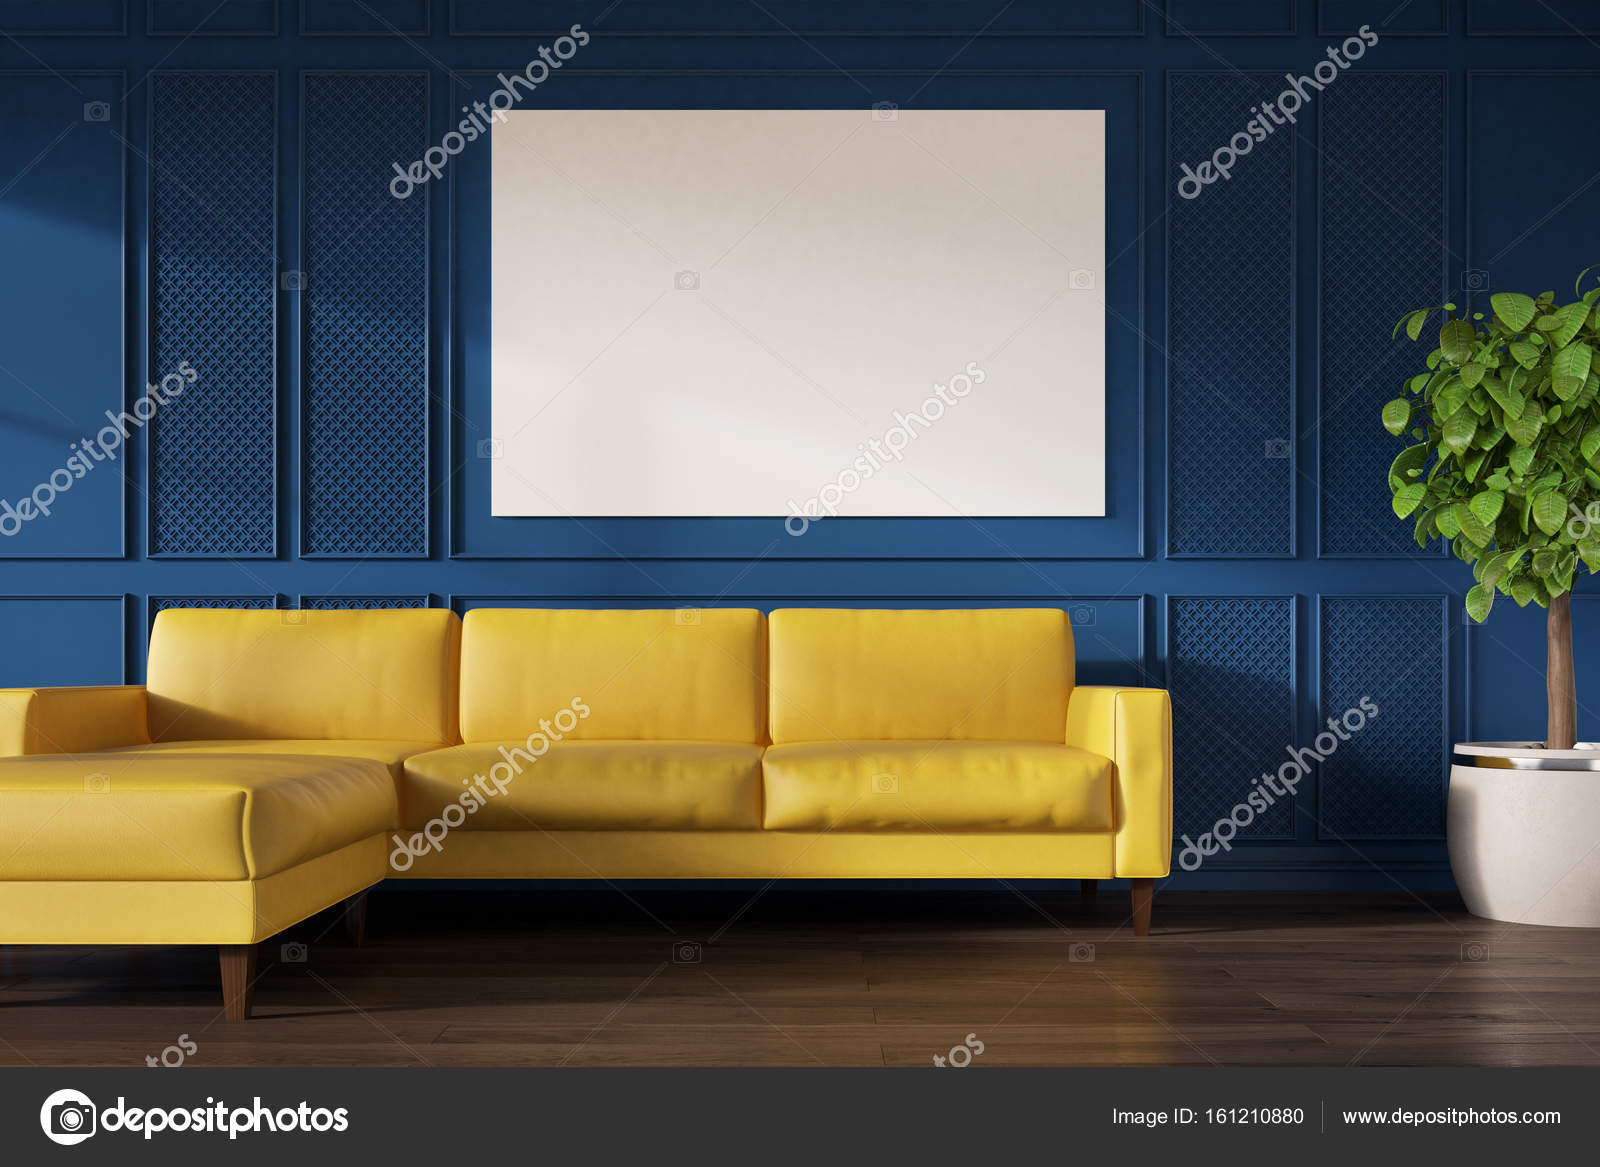 Blue Wall Yellow Sofa Poster Stock Photo Image By C Denisismagilov 161210880